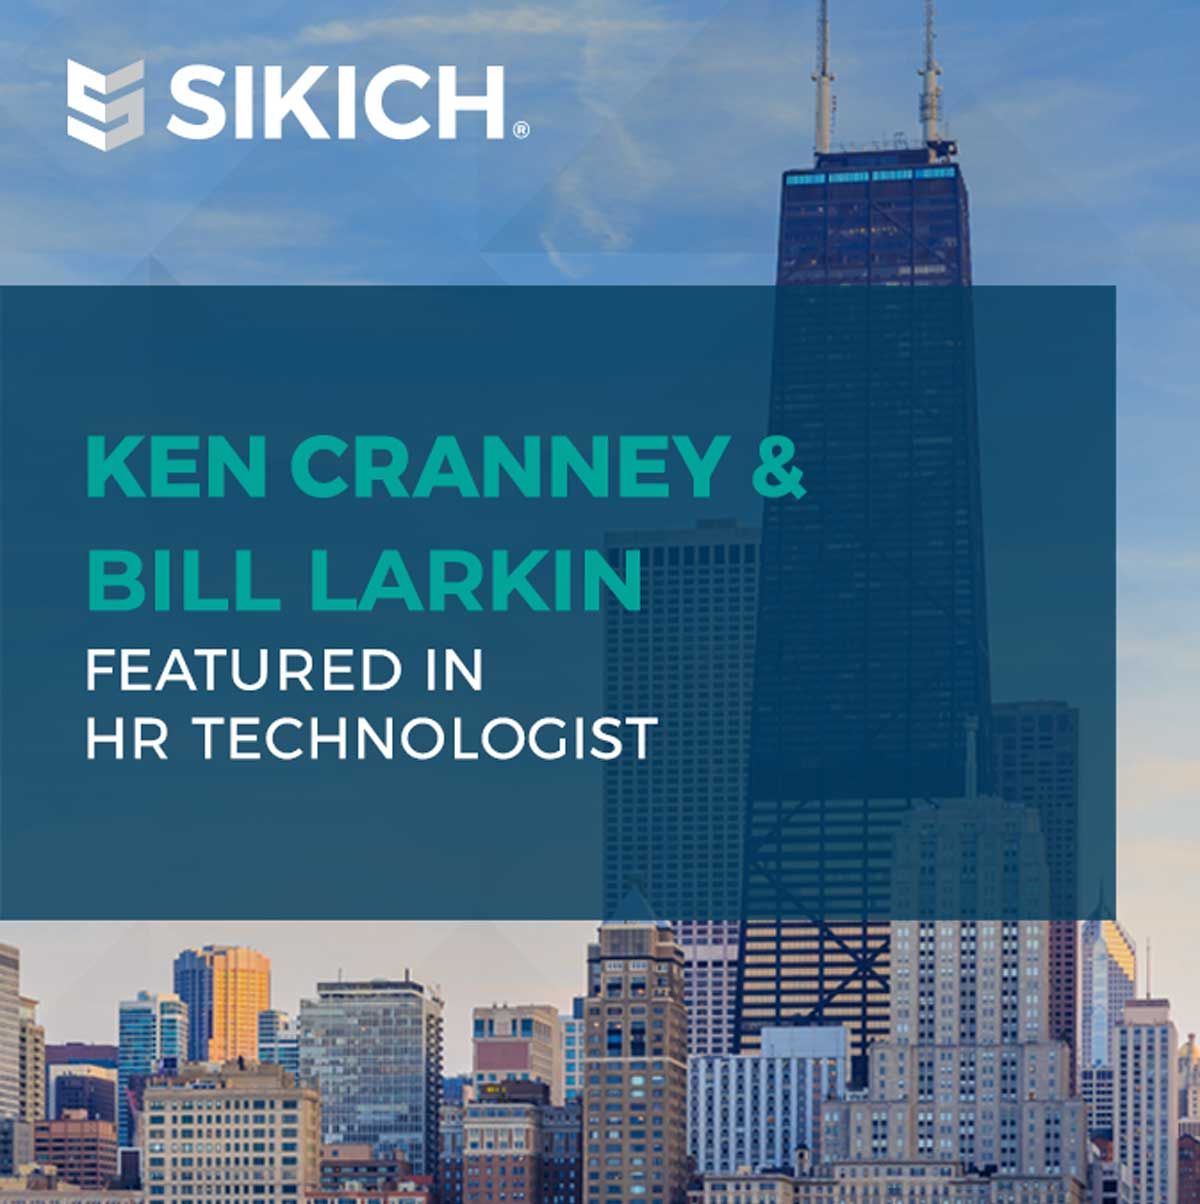 Ken Cranney and Bill Larkin in HR Technologist reads the text over a Chicago skyline image